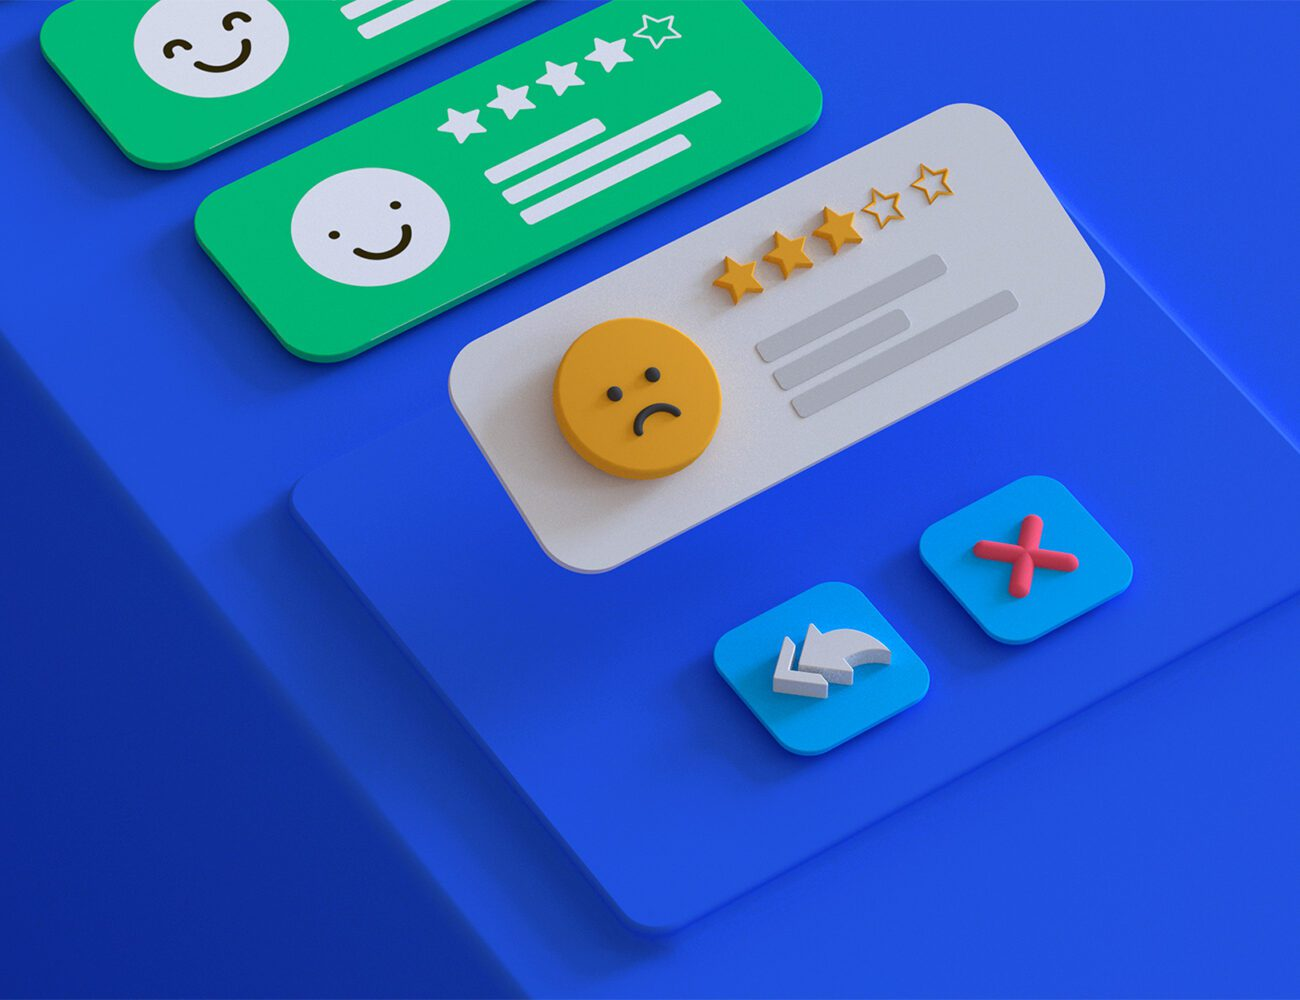 How to handle reviews and improve the app rating?